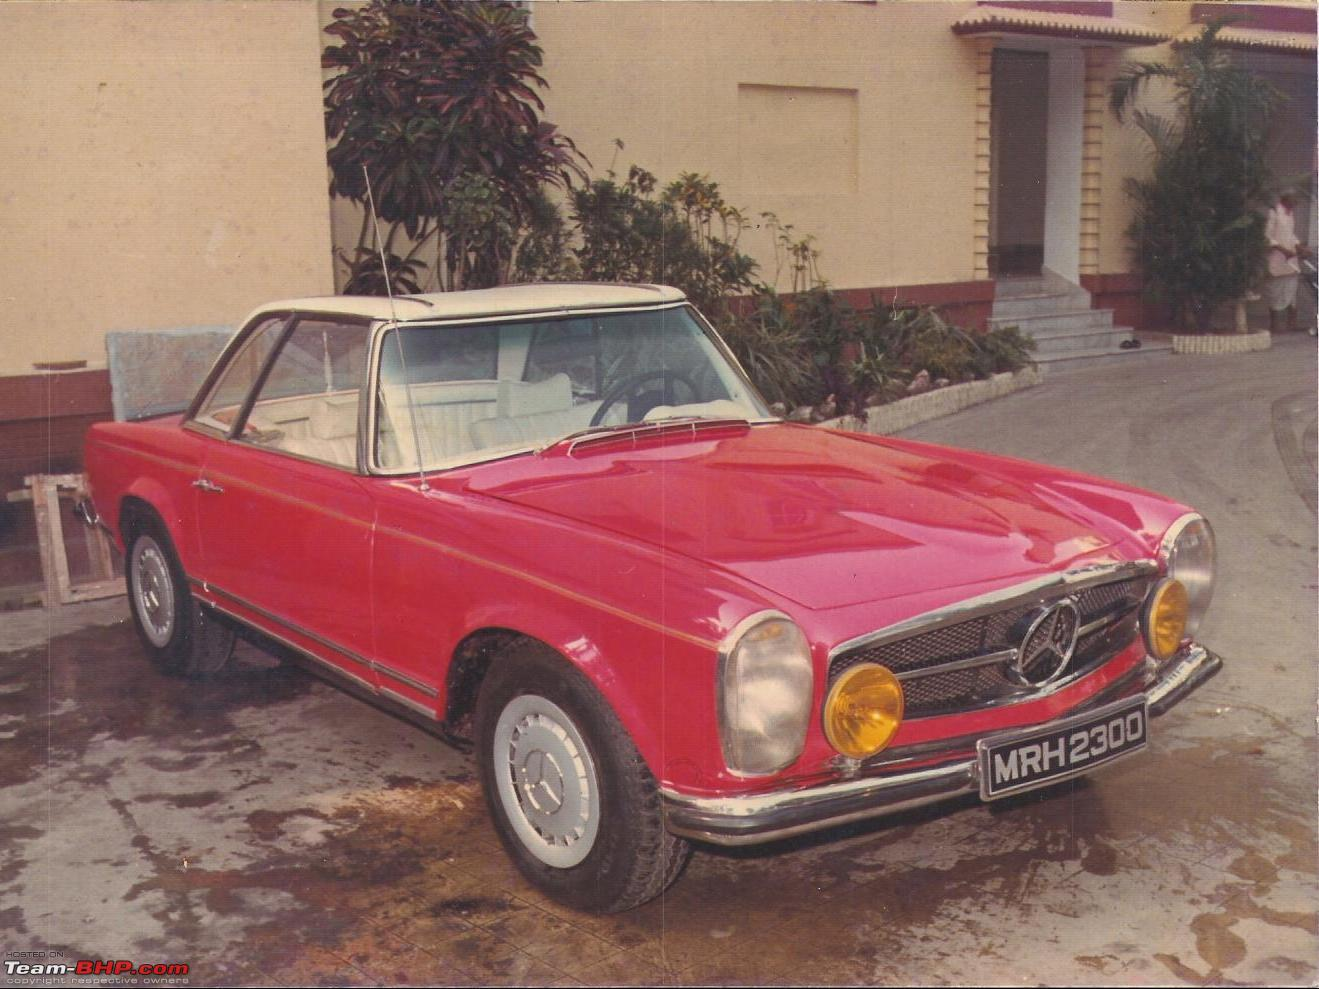 Vintage & Classic Mercedes Benz Cars in India - Page 2 - Team-BHP